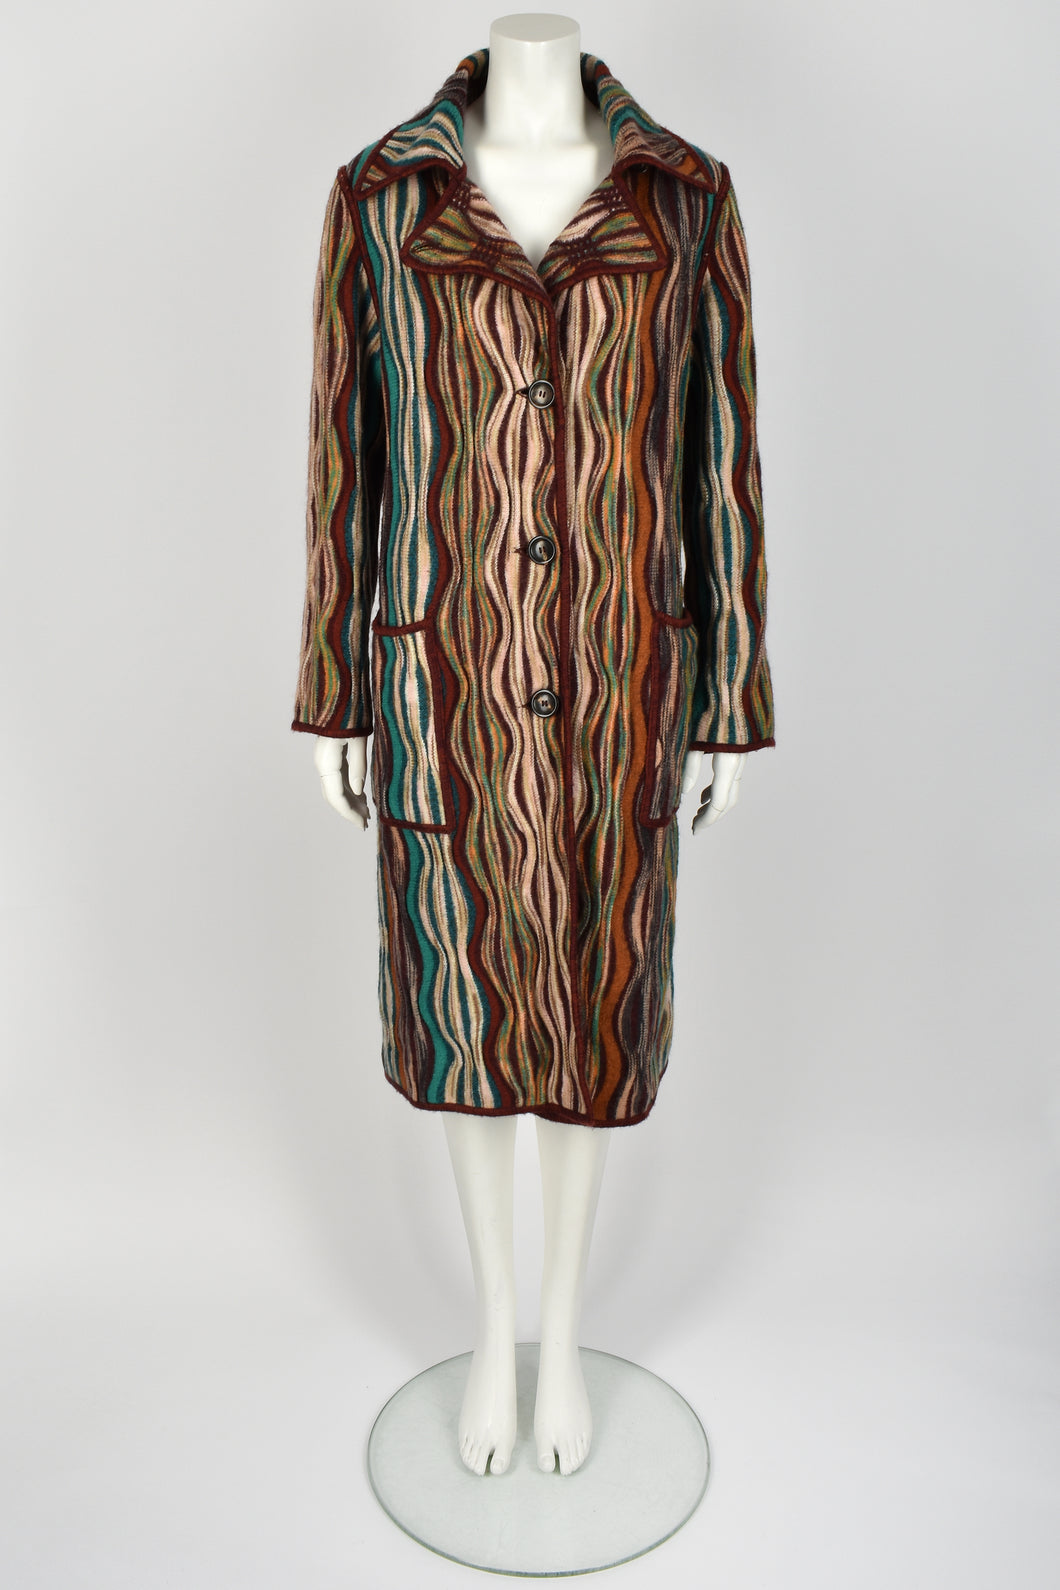 MISSONI wool knit coat M-L